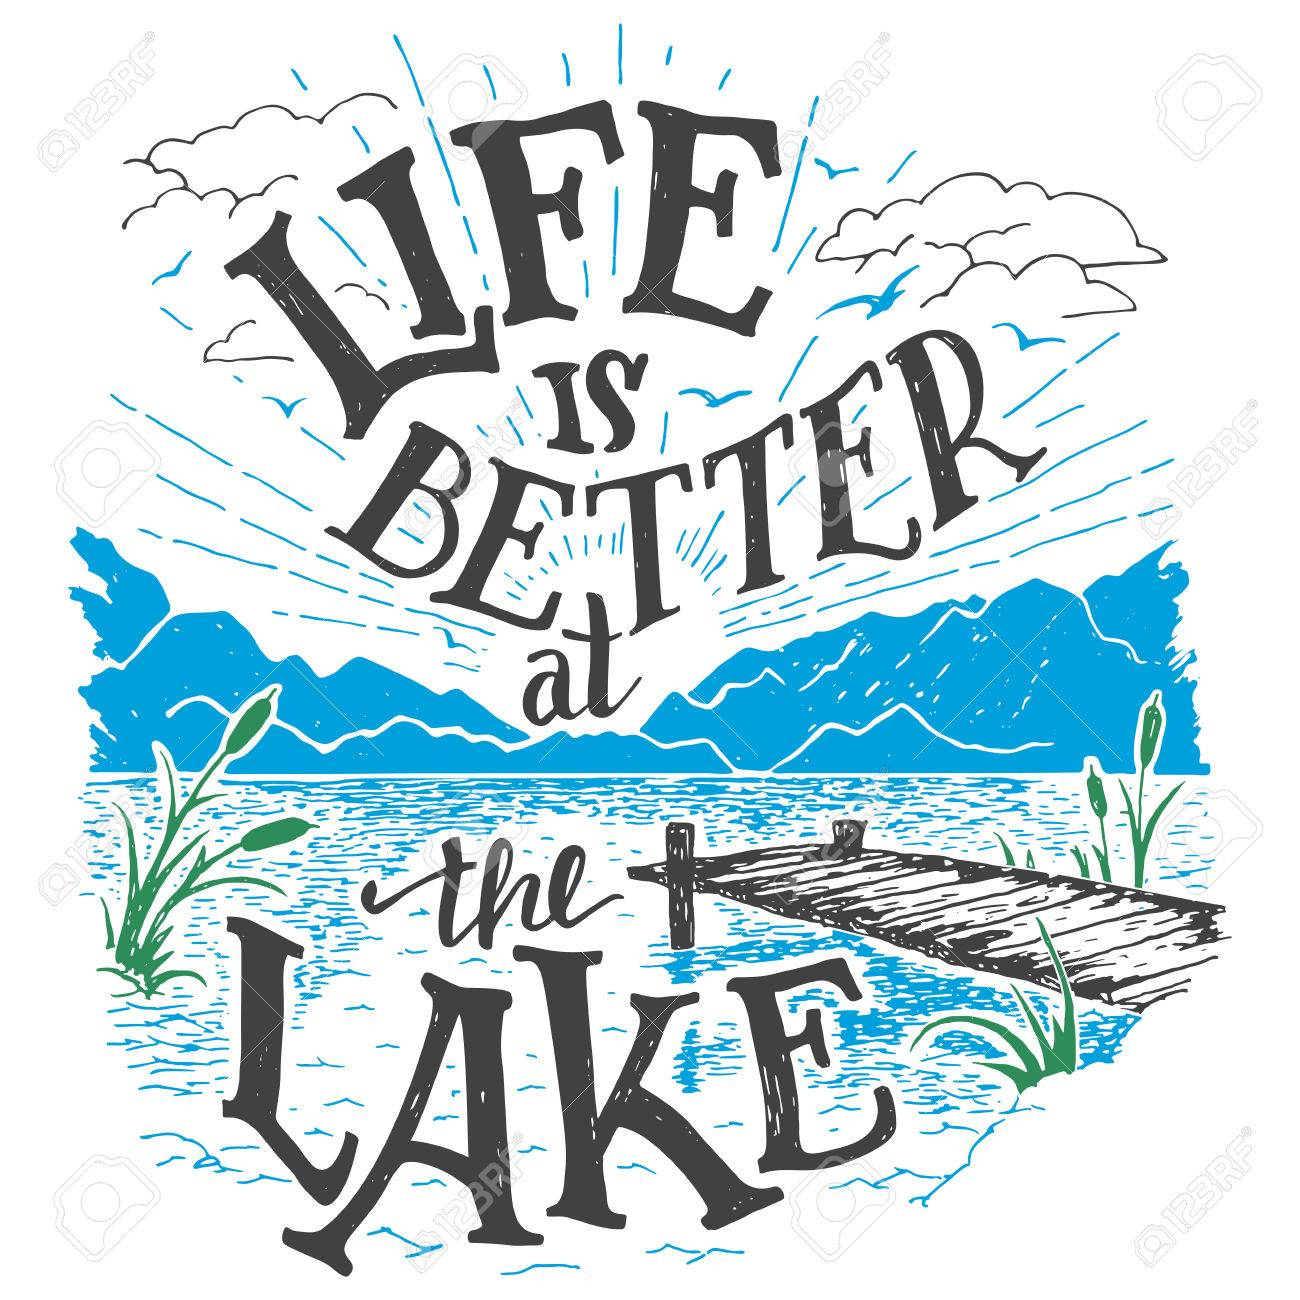 Life is better at the lake. Lake house decor sign in vintage style. Lake sign for rustic wall decor. Lakeside living cabin, cottage hand-lettering quote. Vintage typography illustration - 56479267